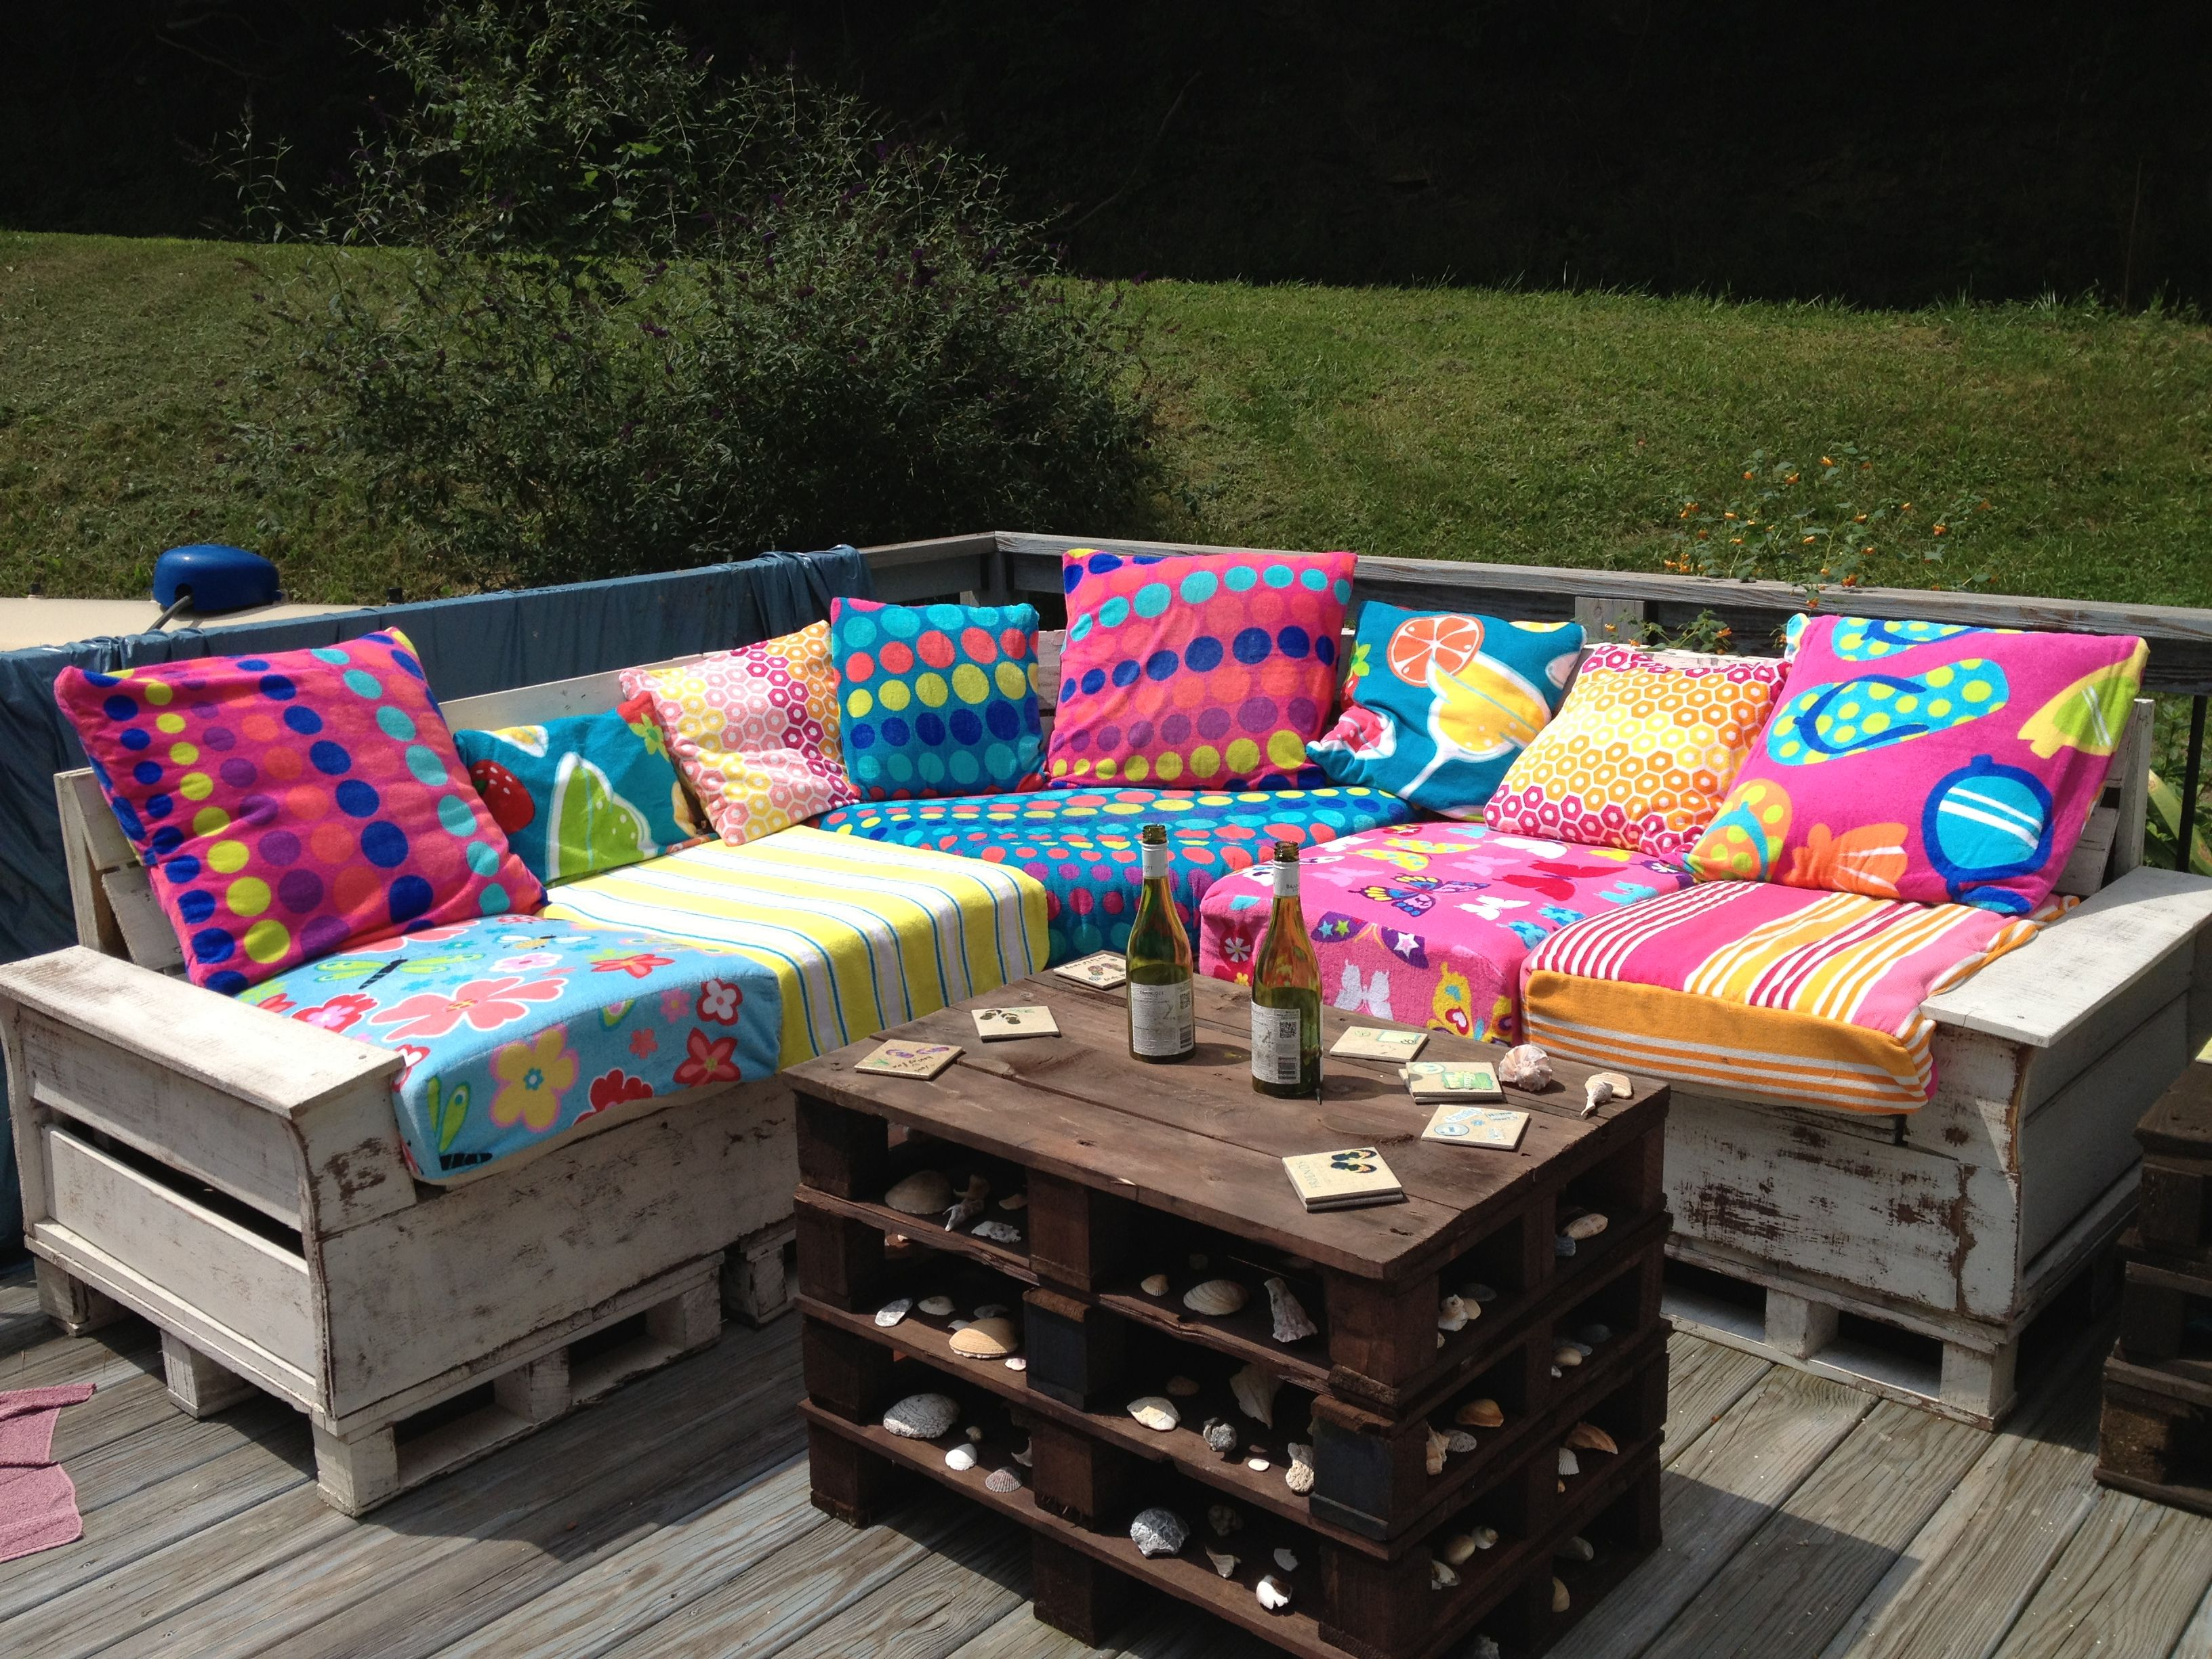 Made this pallet sectional for our back deck. Cushions are recycled from a old couch, and pillows just recovered with fun beach towel patterns! LOVE IT!